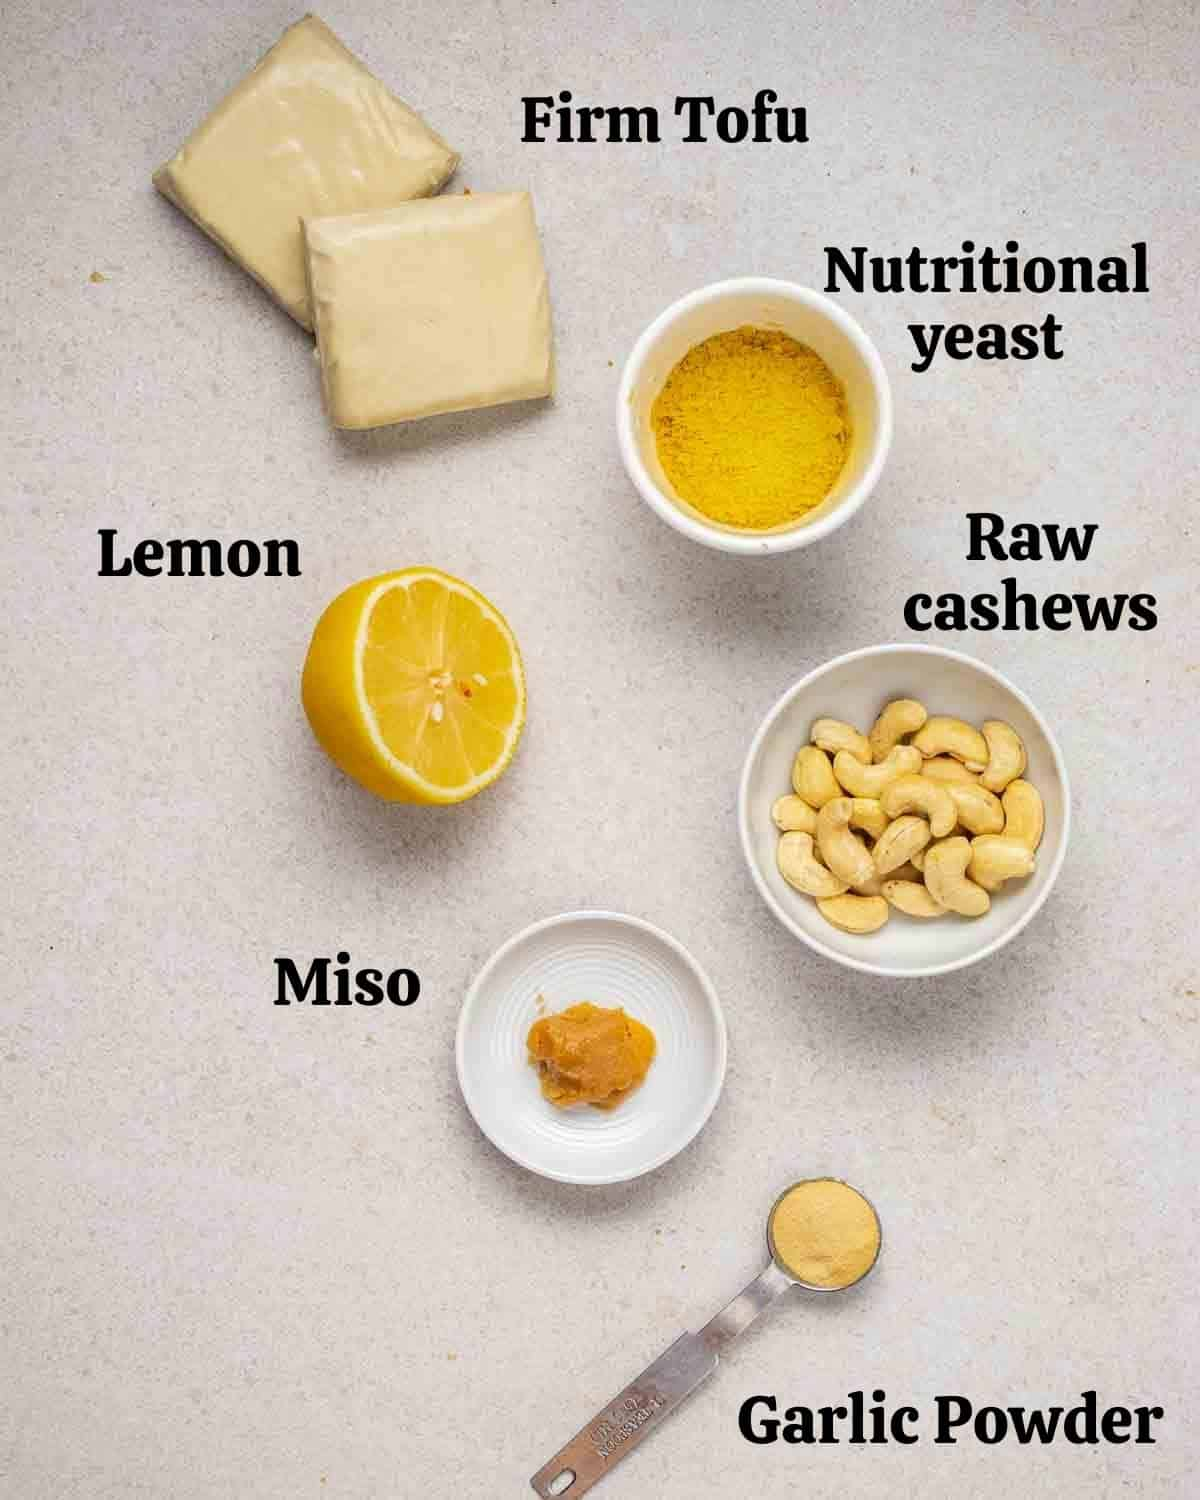 Ingredients needed for vegan ricotta like tofu, cashews, nutritional yeast and lemon on a grey background.